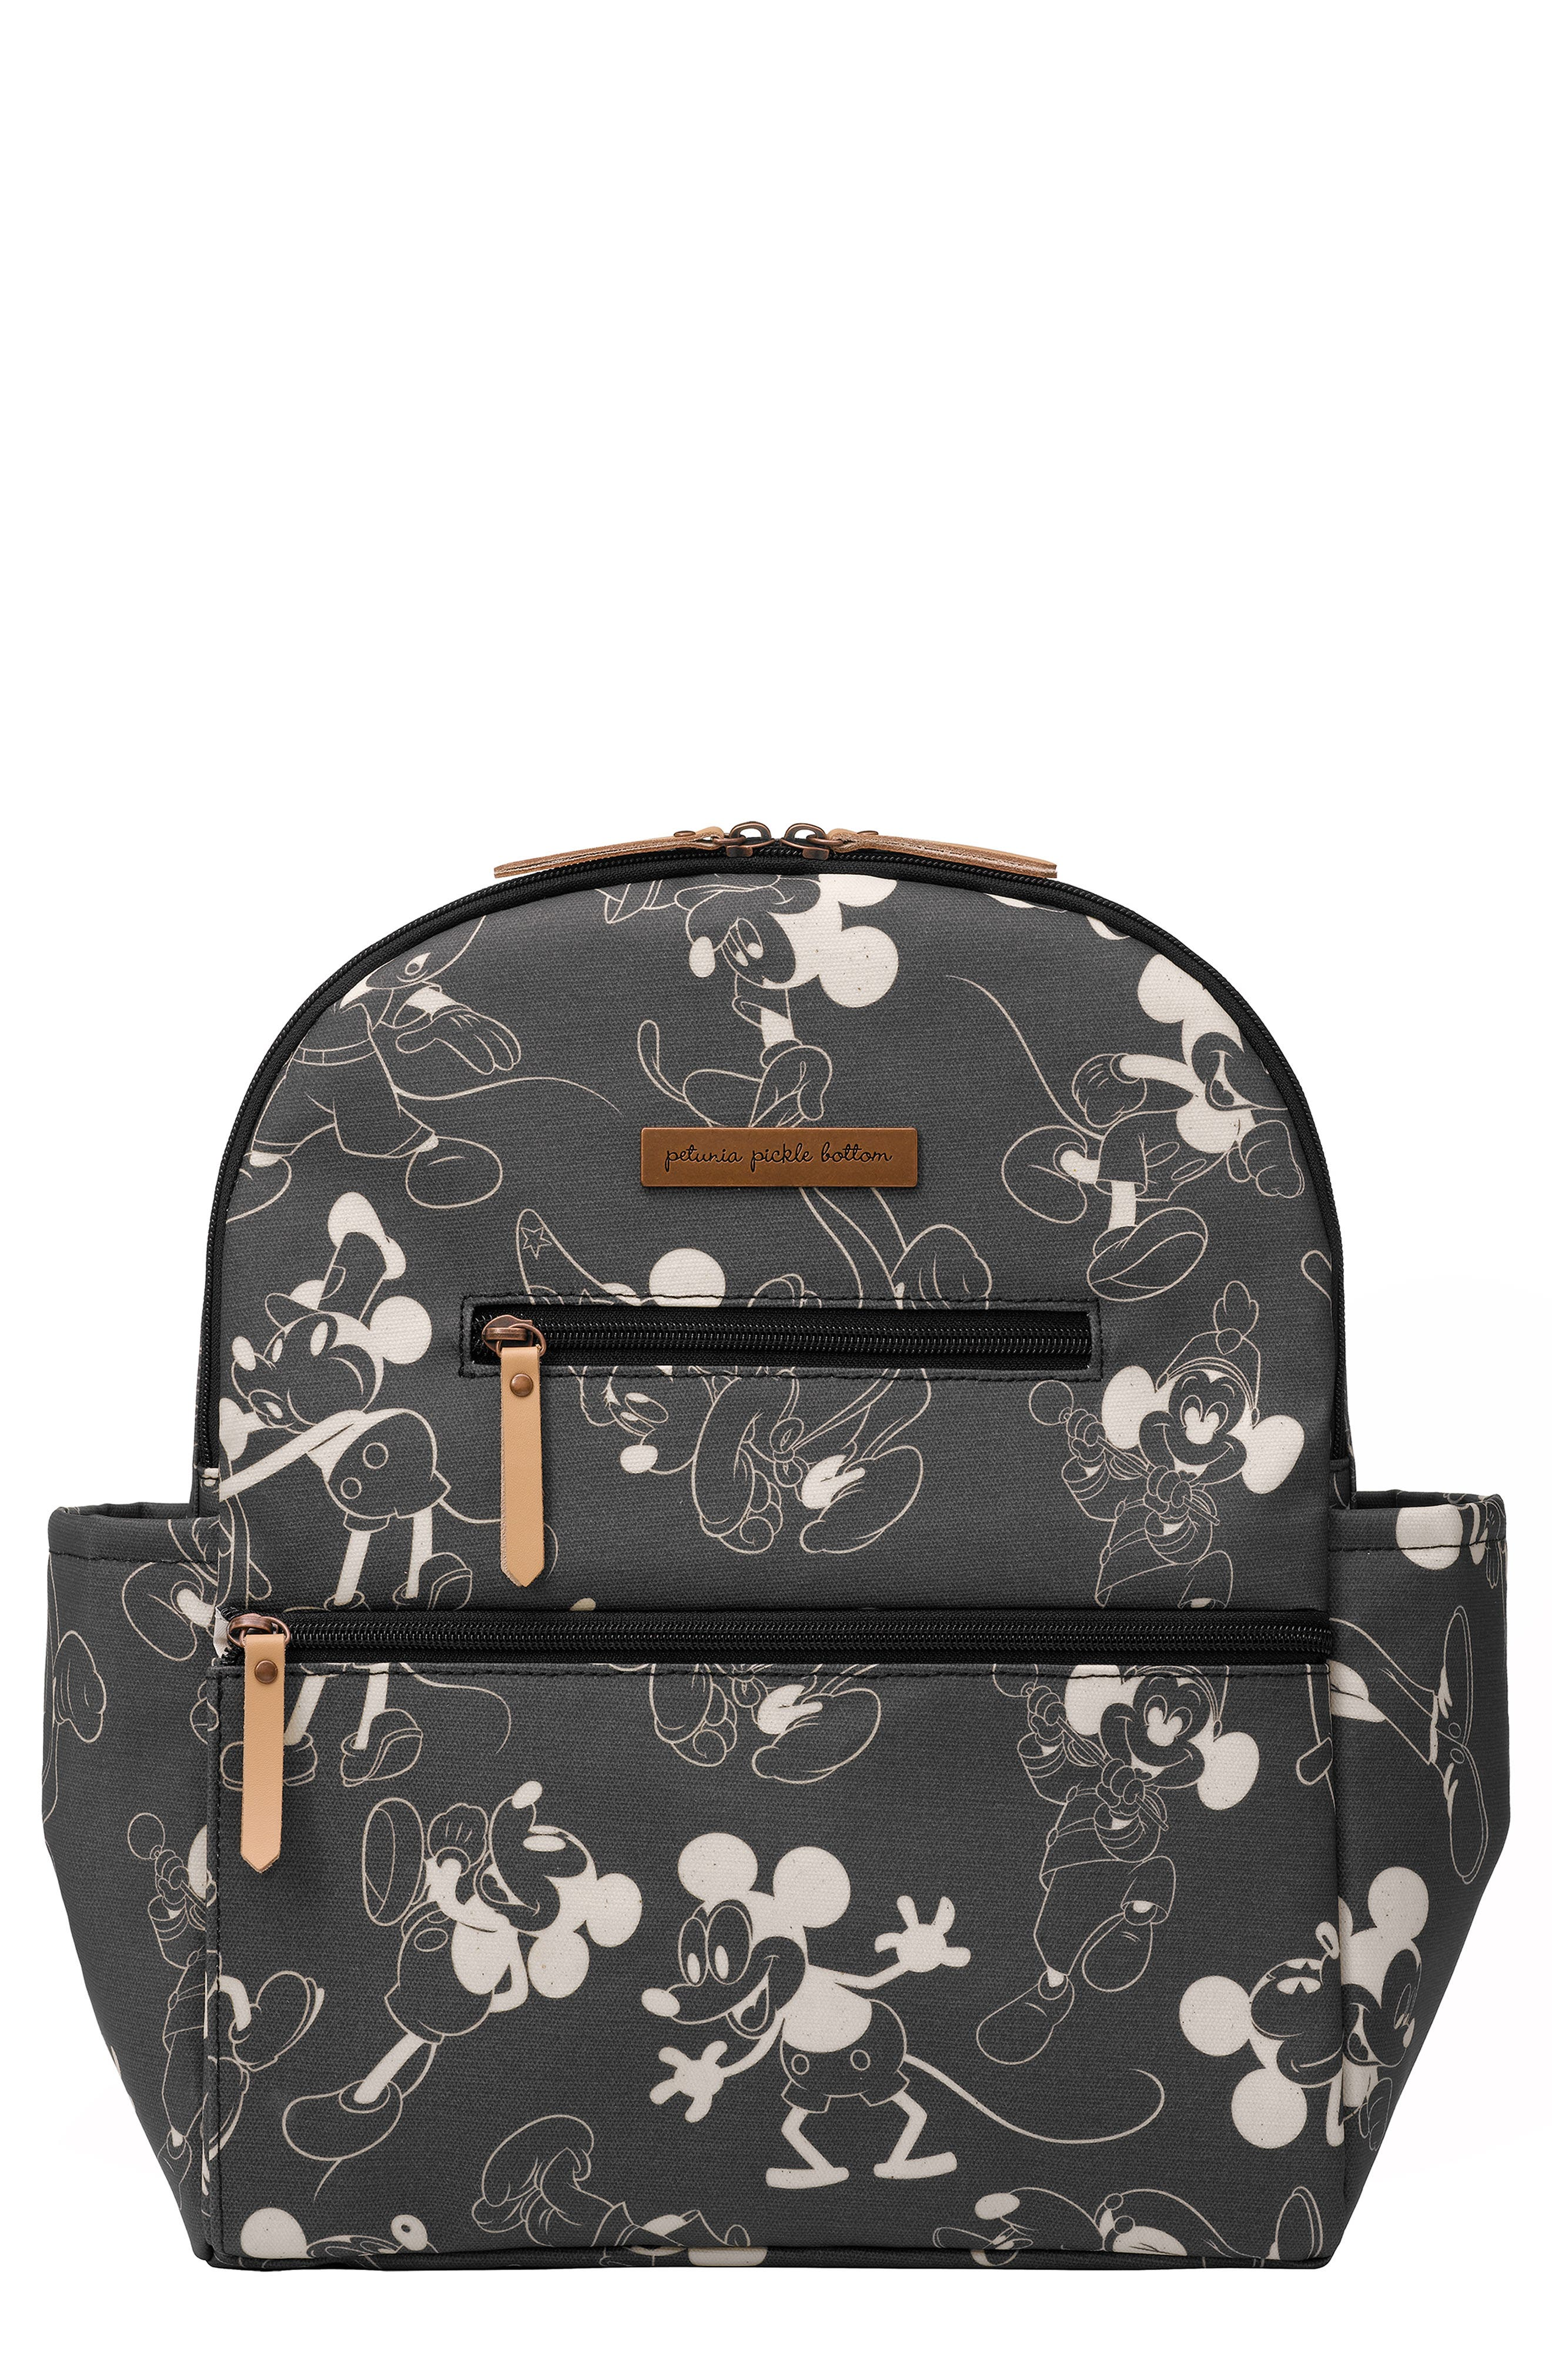 Petunia Pickle Bottom Disney Collaboration Ace Backpack